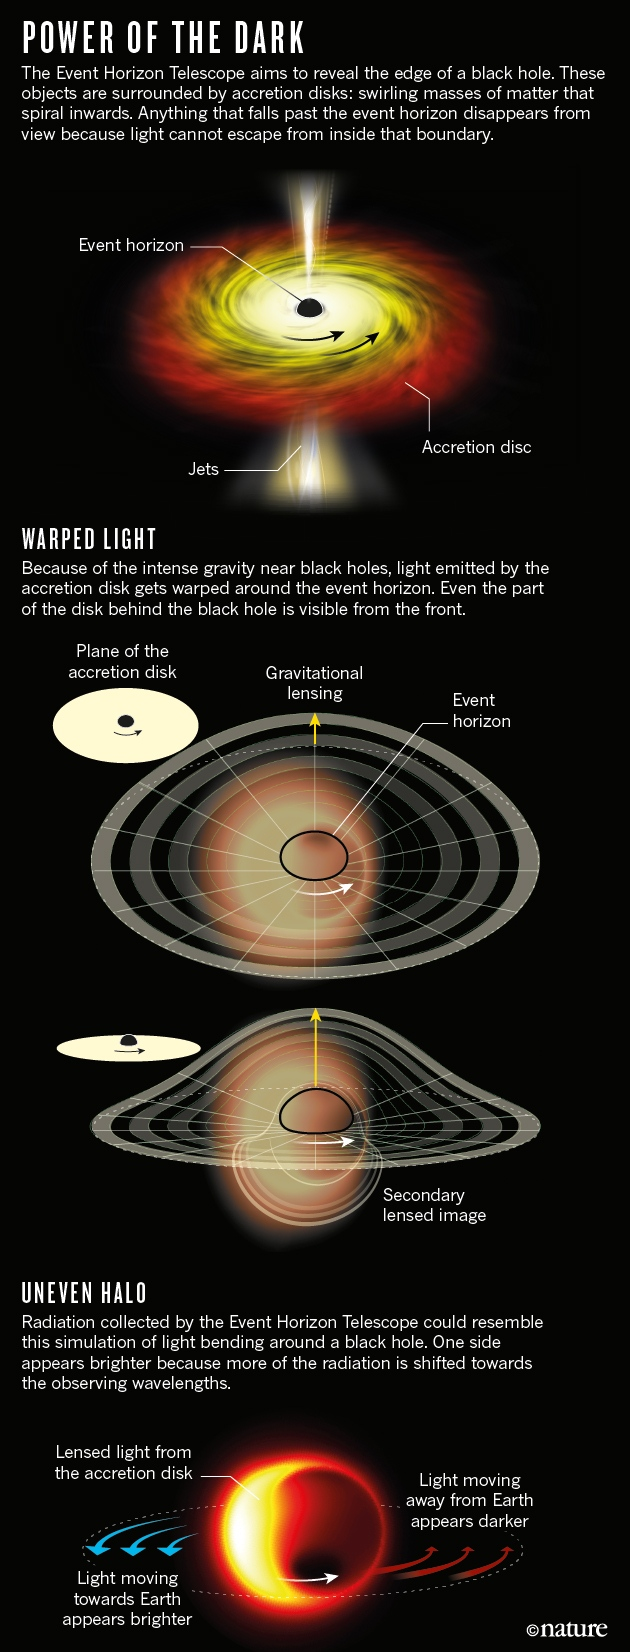 http://www.nature.com/polopoly_fs/7.43123.1490105161!/image/black-hole-graphic-ONLINE.jpg_gen/derivatives/landscape_630/black-hole-graphic-ONLINE.jpg